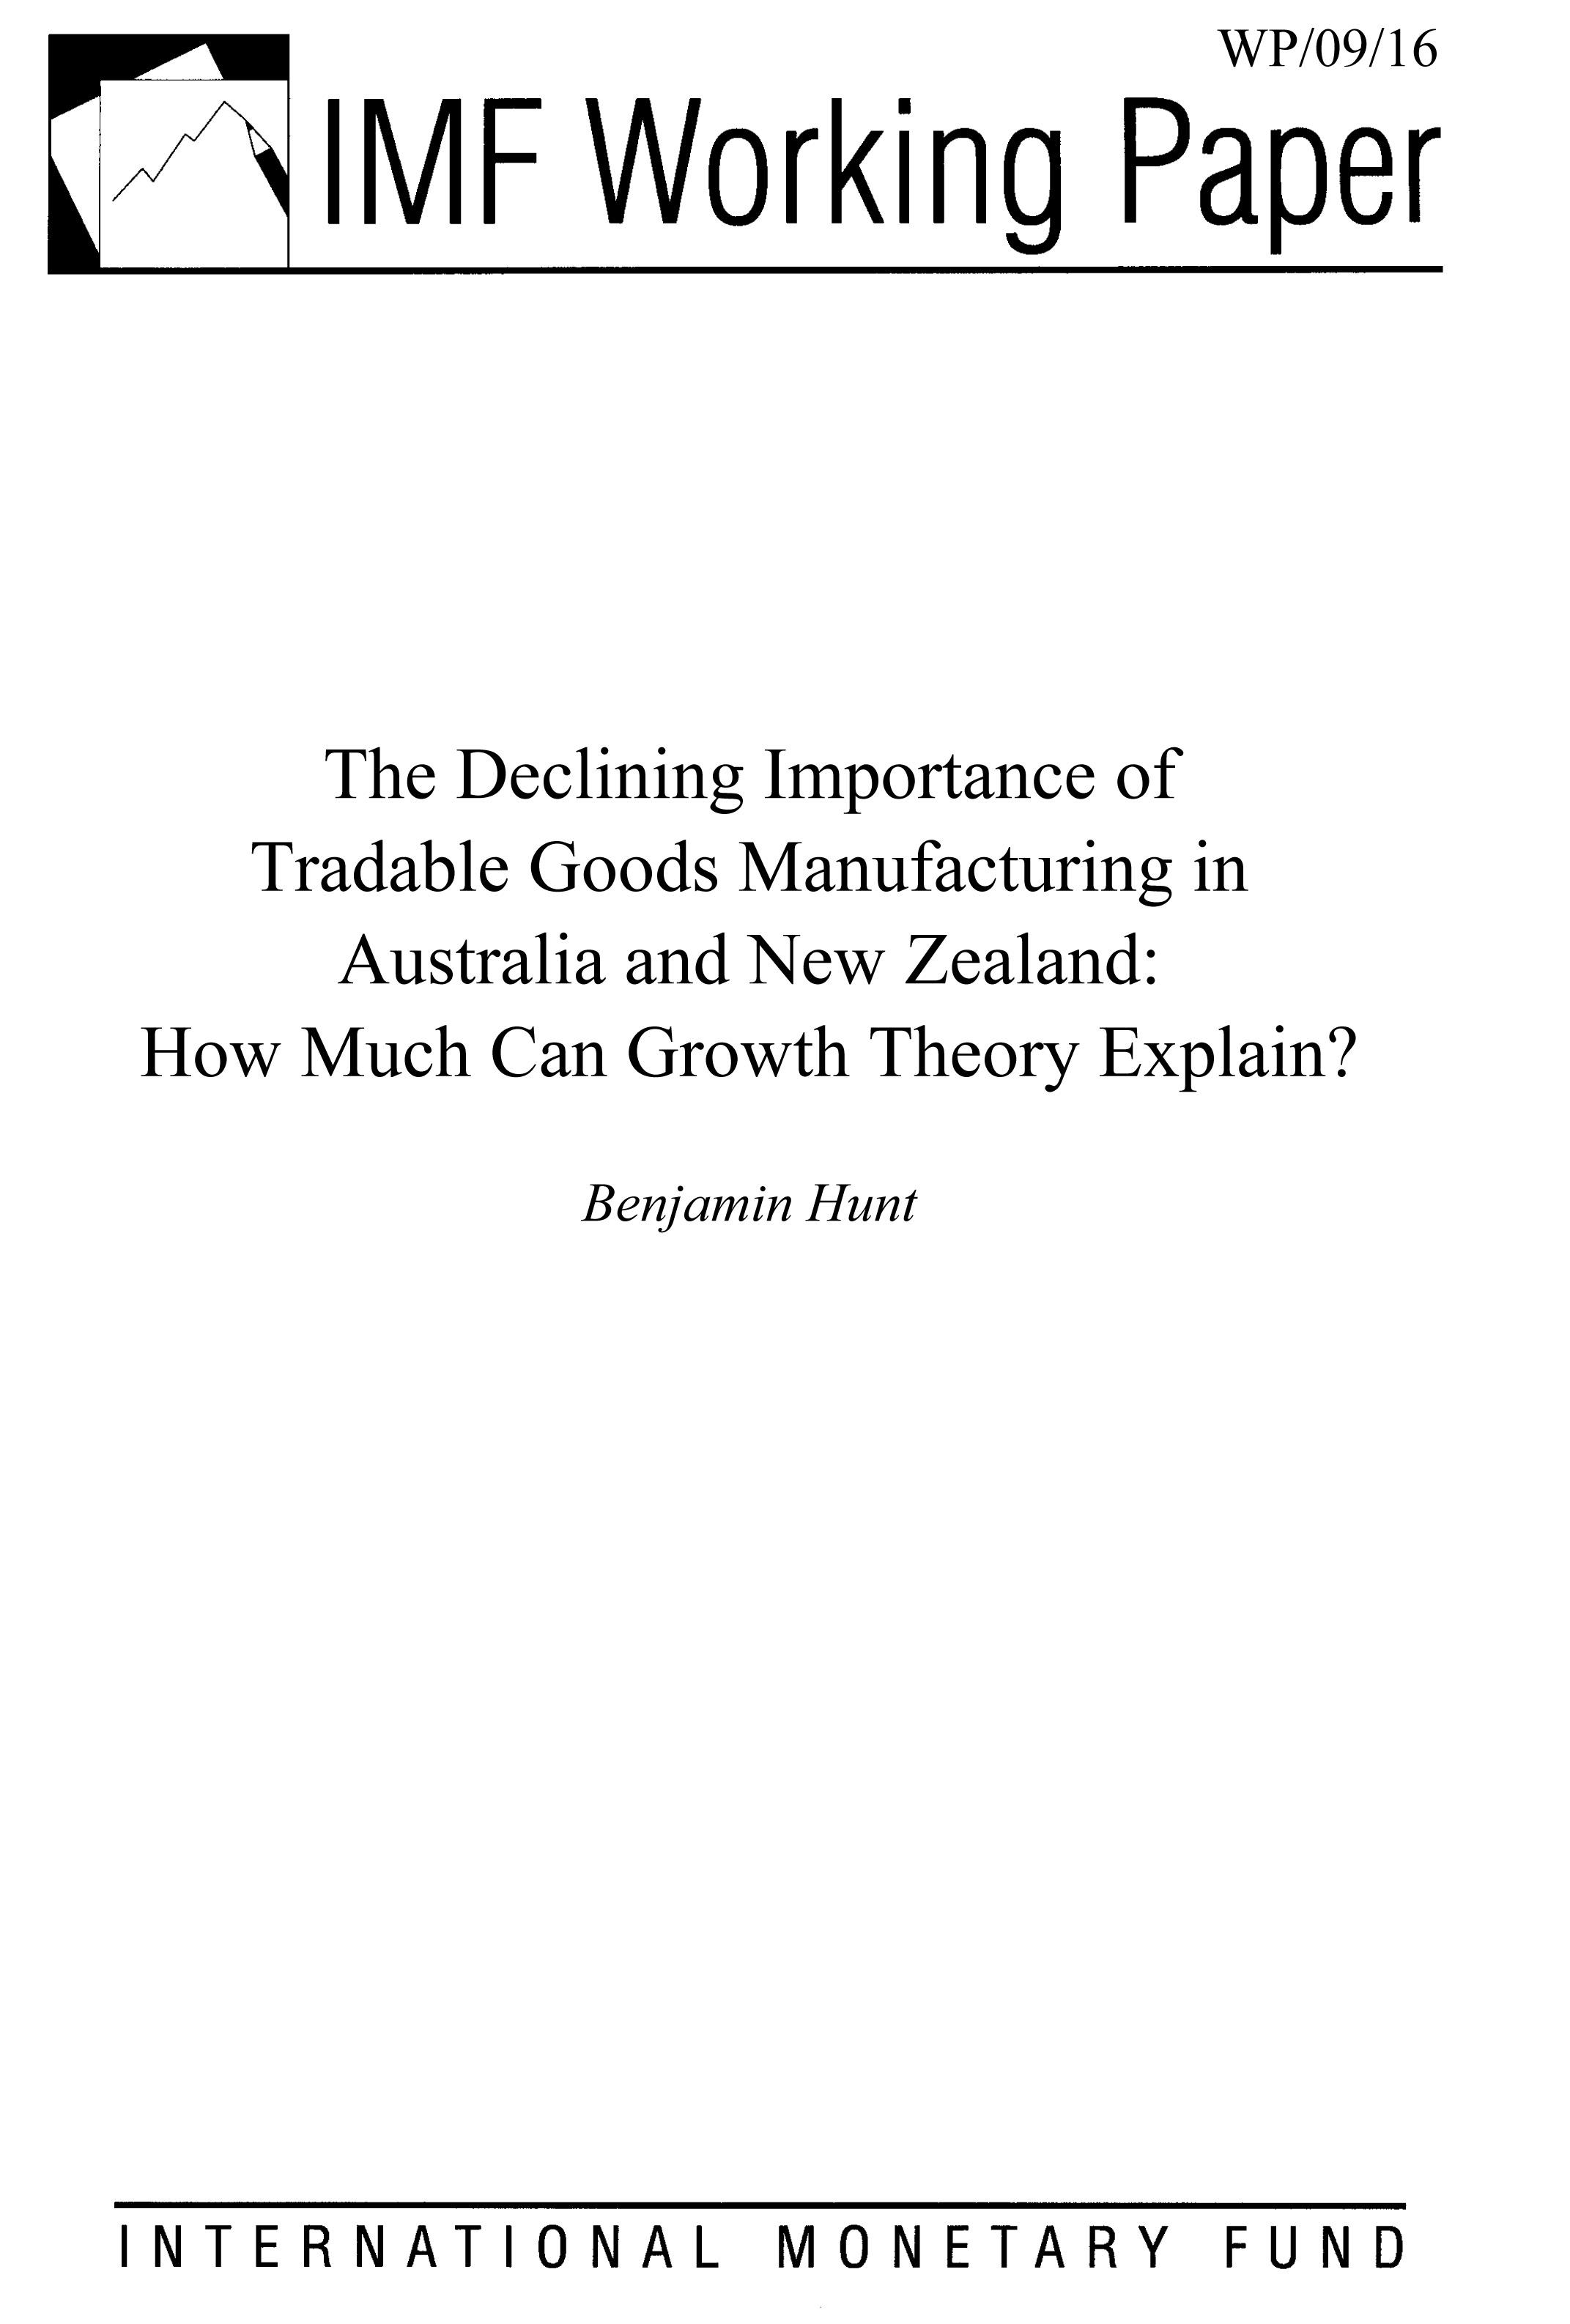 The Declining Importance of Tradable Goods Manufacturing in Australia and New Zealand: How Much can Growth Theory Explain?